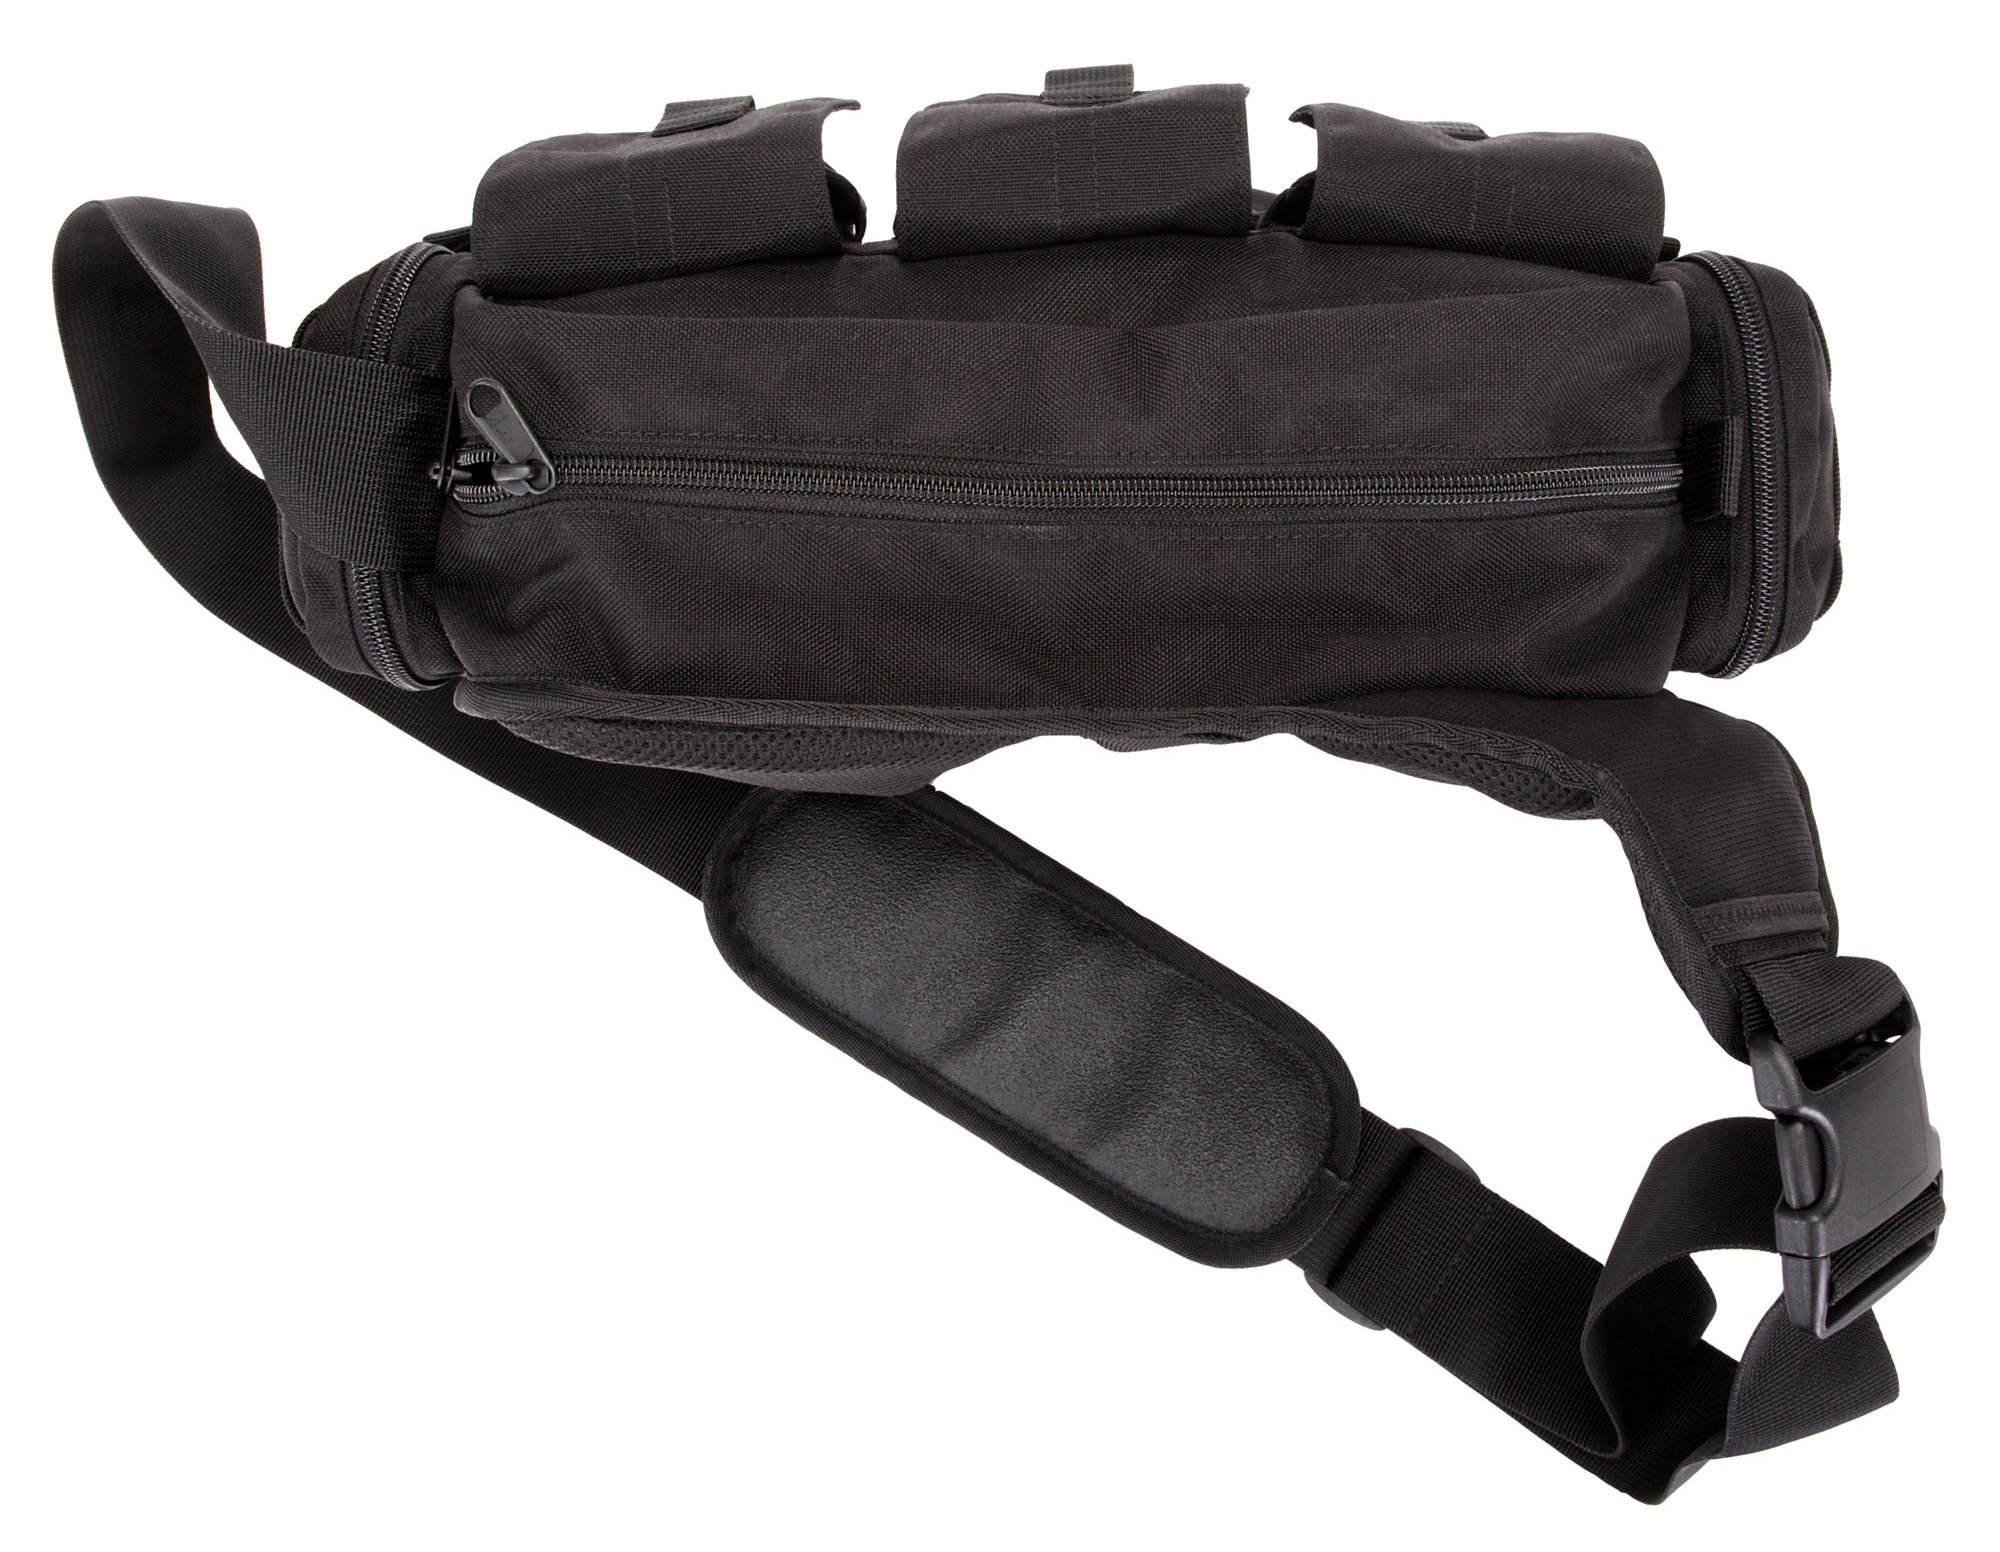 5.11 Tactical Bail Out Bag Molle Ammo Magazine Carrier Pack for Responders, Style 56026 by 5.11 (Image #3)